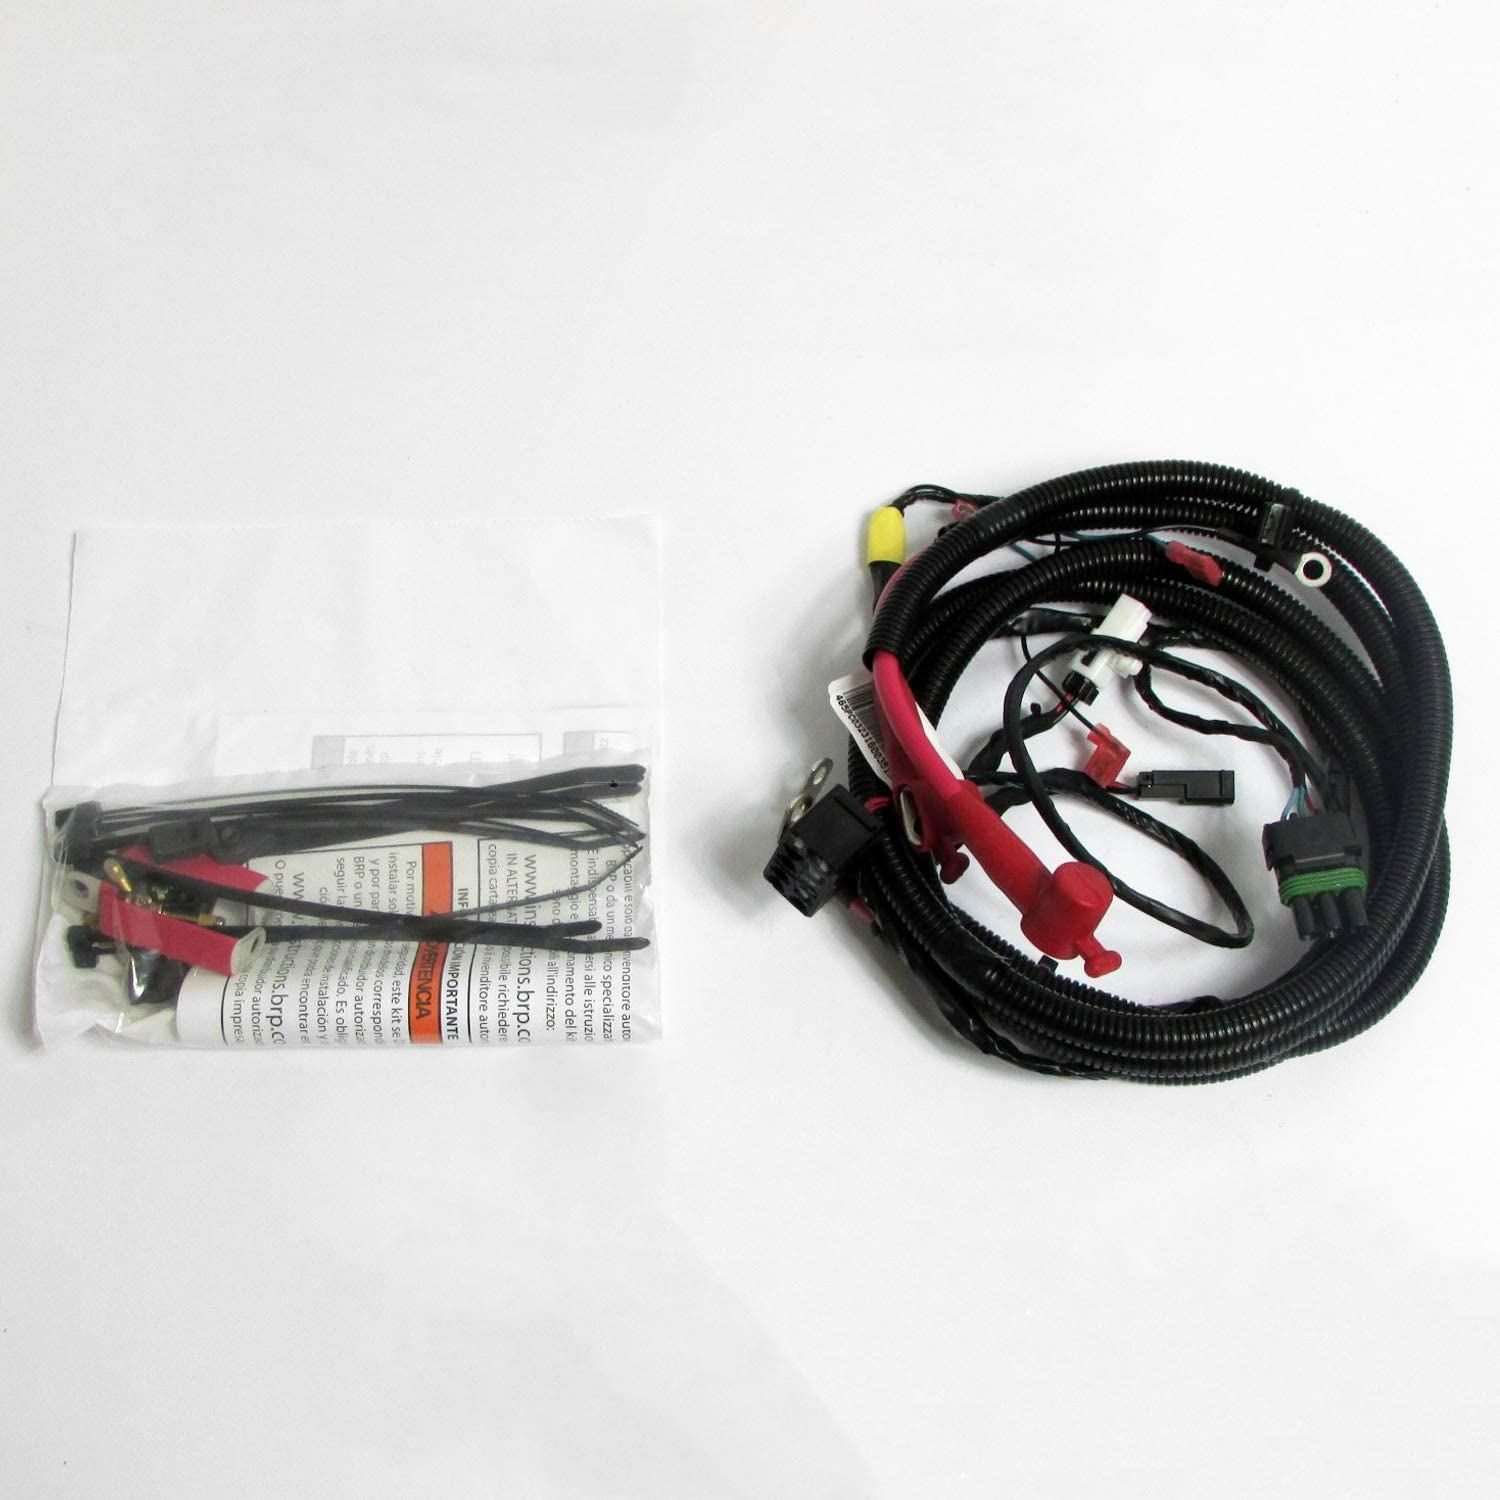 Amazon.com: Can-Am New OEM Defender Winch Electrical Harness, 715003093:  Automotive   Winch Harness      Amazon.com